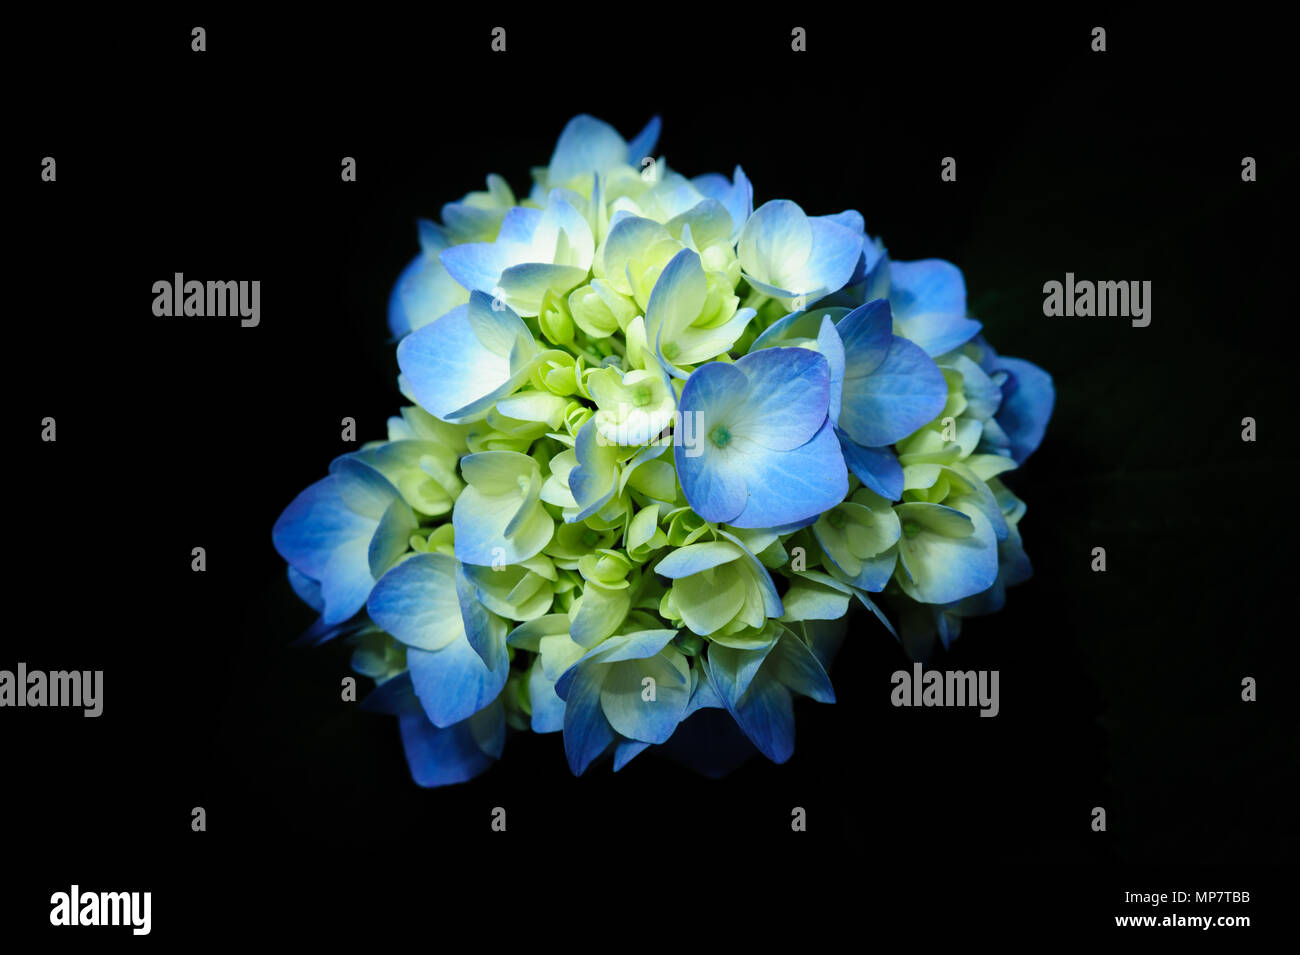 Beautiful And Fragrant Hydrangea Macrophylla Flower Blue And Yellow